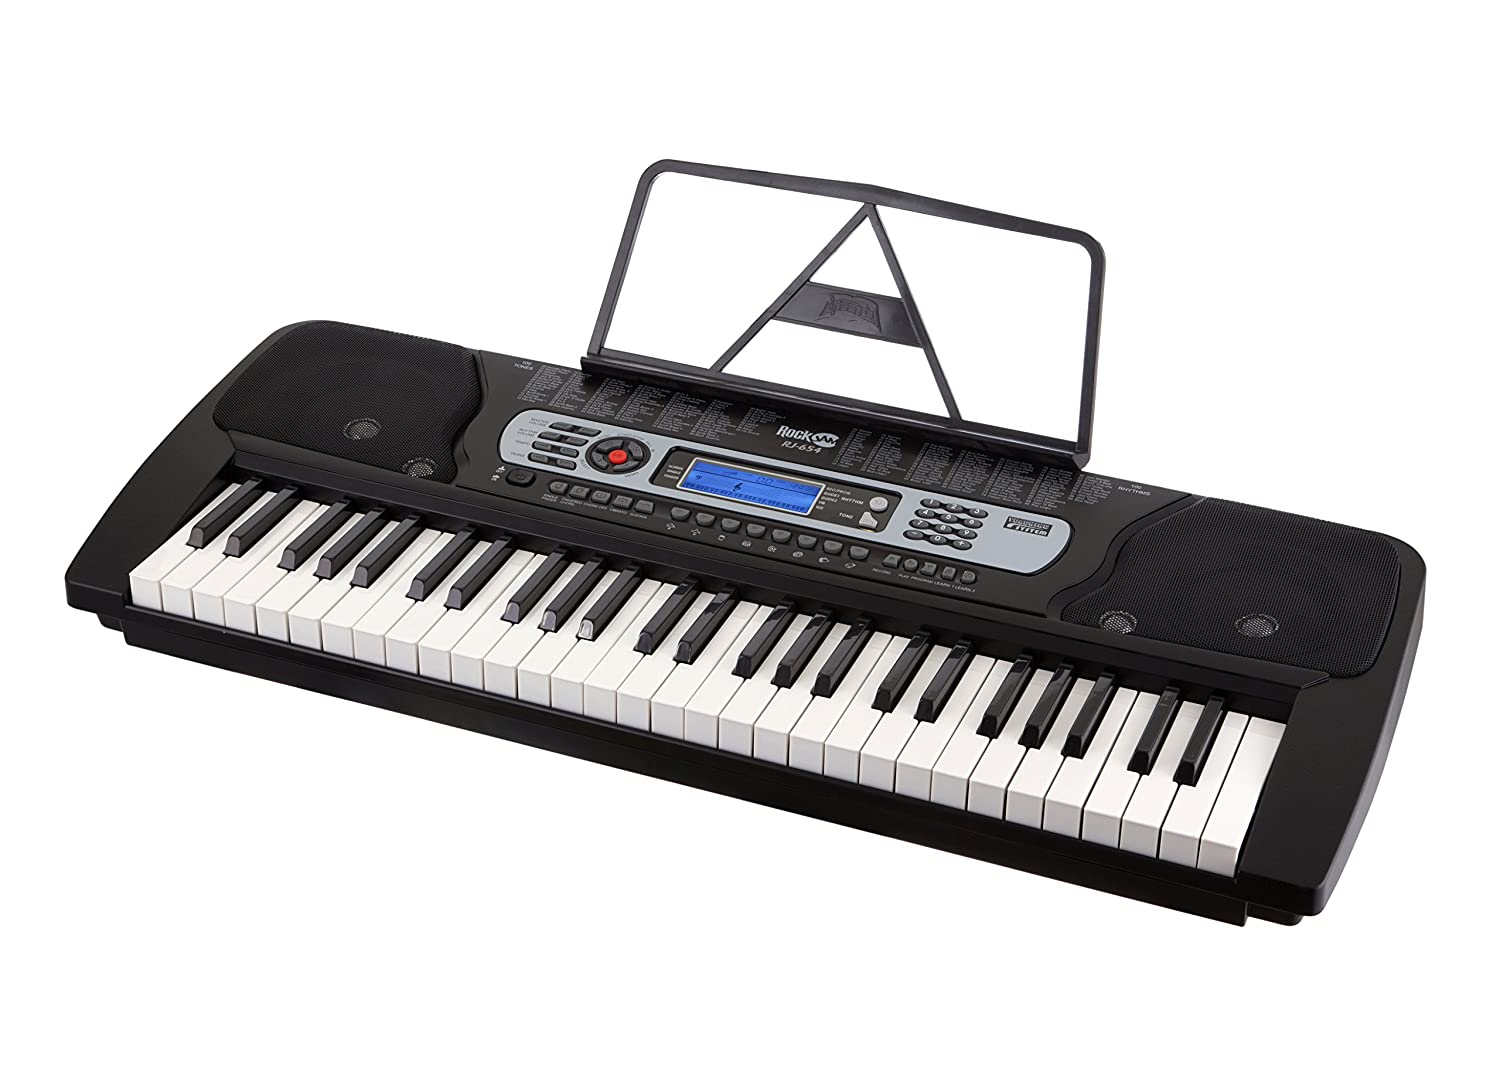 top 10 best portable electronic piano reviews 2018 2019 on flipboard by avadew. Black Bedroom Furniture Sets. Home Design Ideas